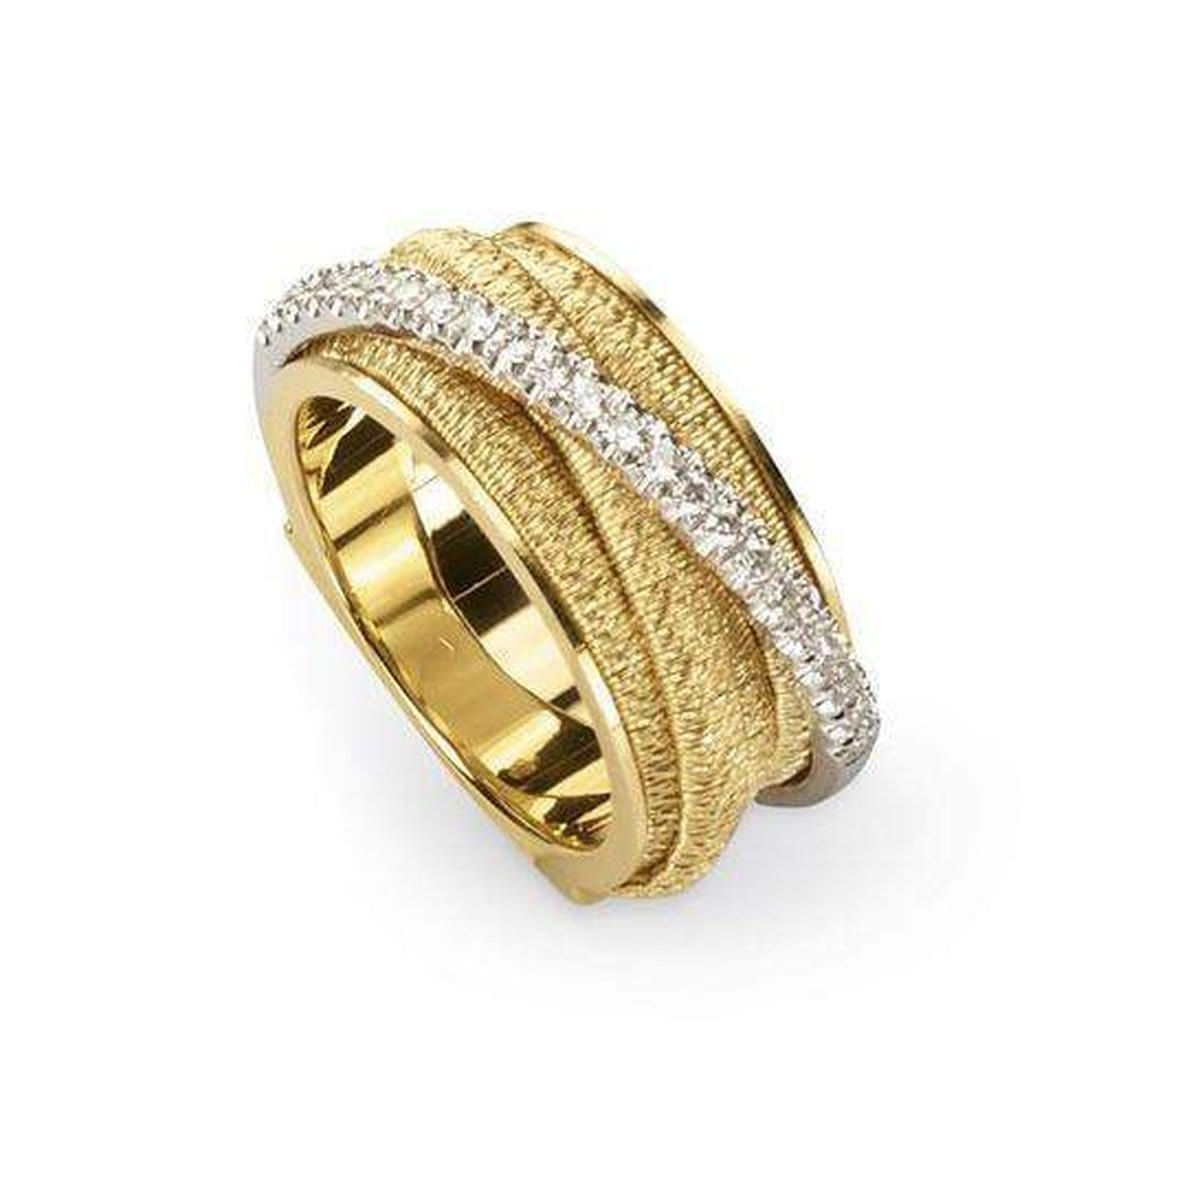 18K Cairo 5 Strand Diamond Ring - AG318 B YW-Marco Bicego-Renee Taylor Gallery